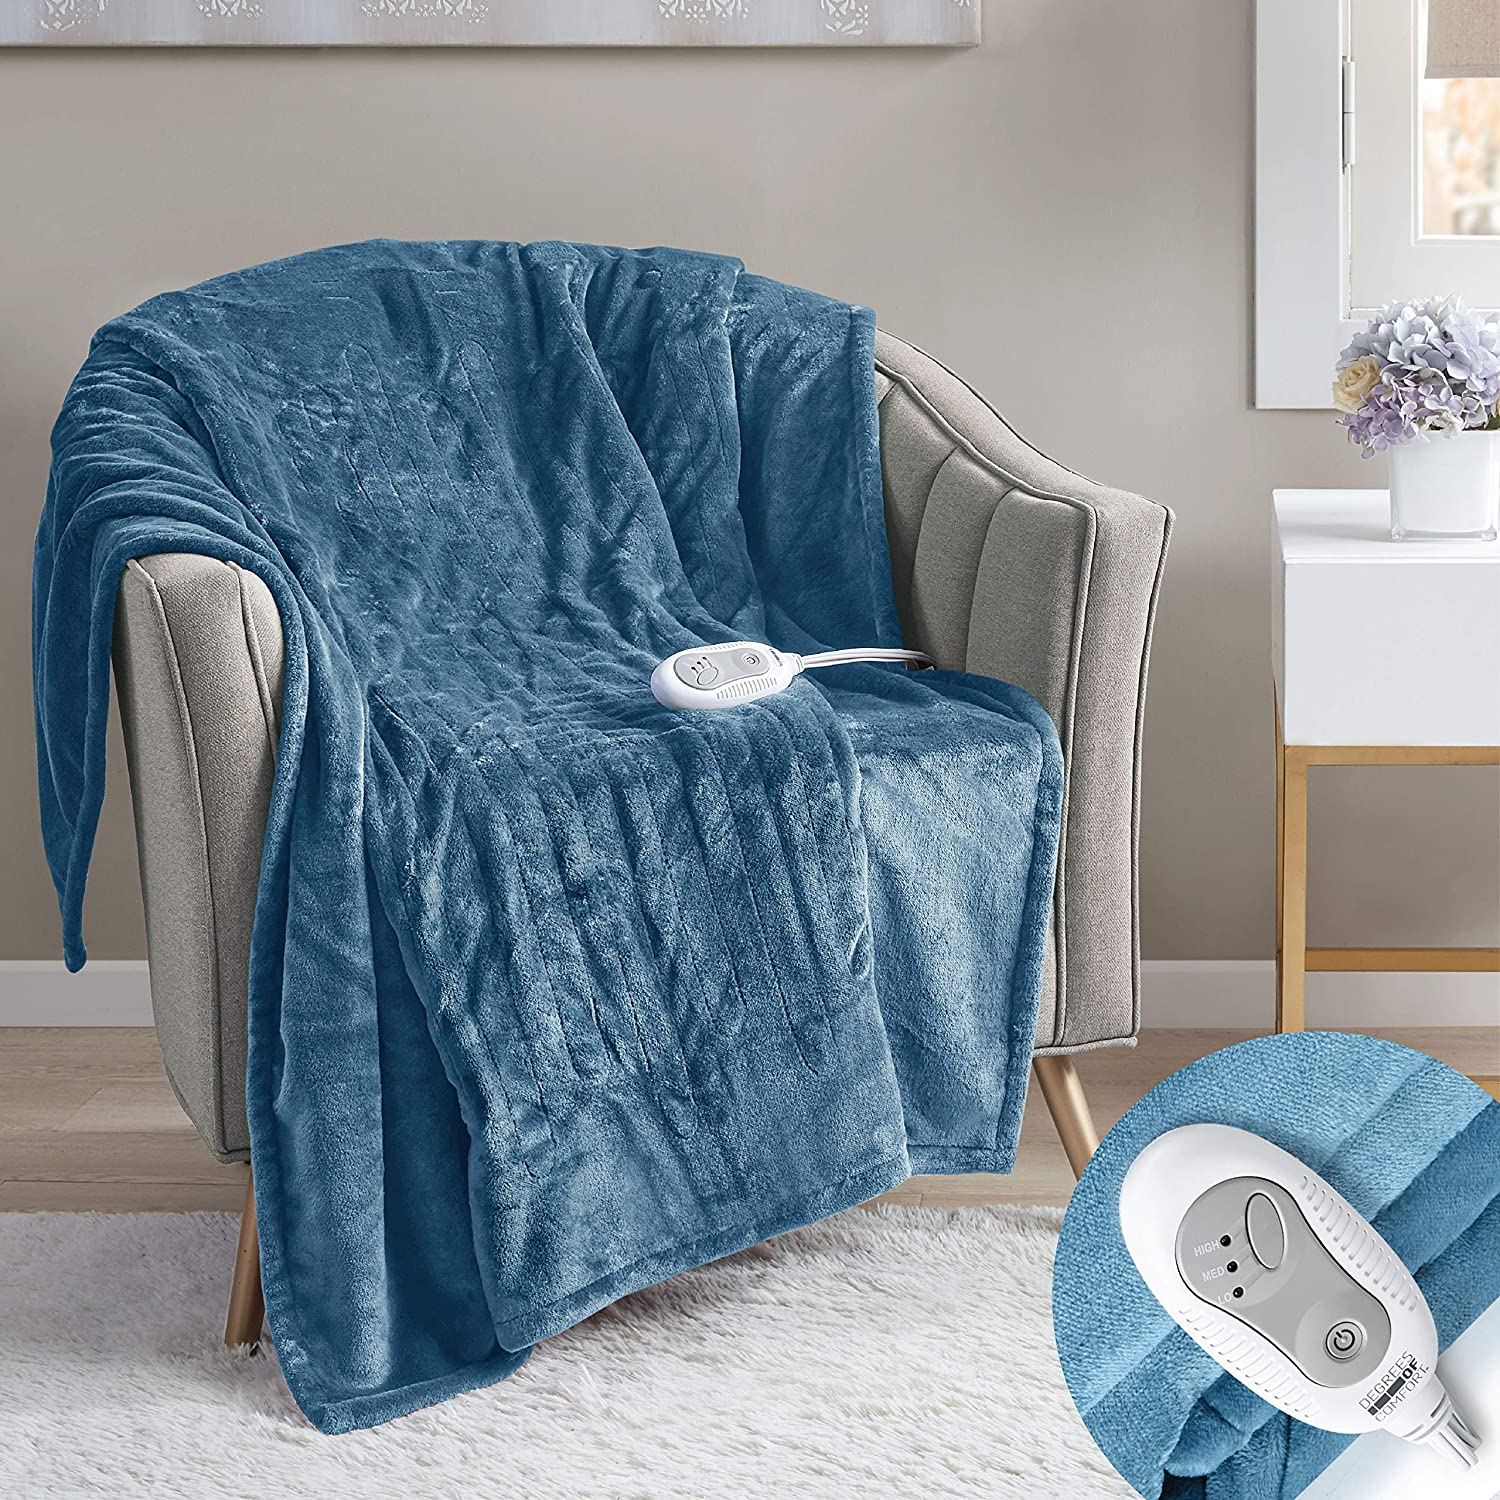 Degrees of Comfort Electric Heated Throw Blanket | Fast Heating, Plush Microlight, UL Certified & Low EMF Radiation – 6ft Cord and 3ft Controller Cable – 3 Heat Settings – Easy to Wash 50x60 Blue